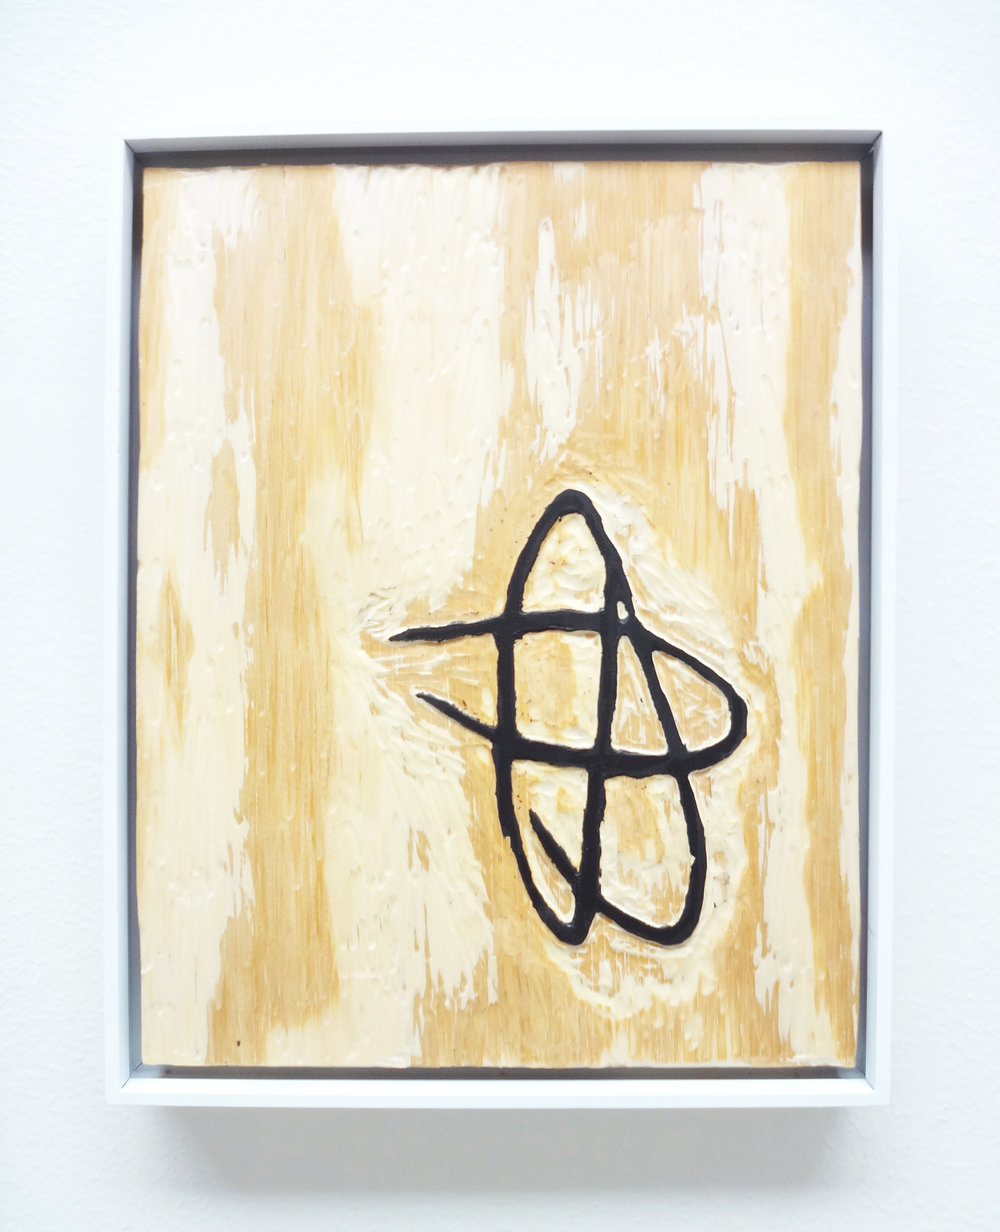 Meghan Gerety  Untitled 09 , 2015 blockprint ink on plywood 15 x 12 in. framed in aluminum